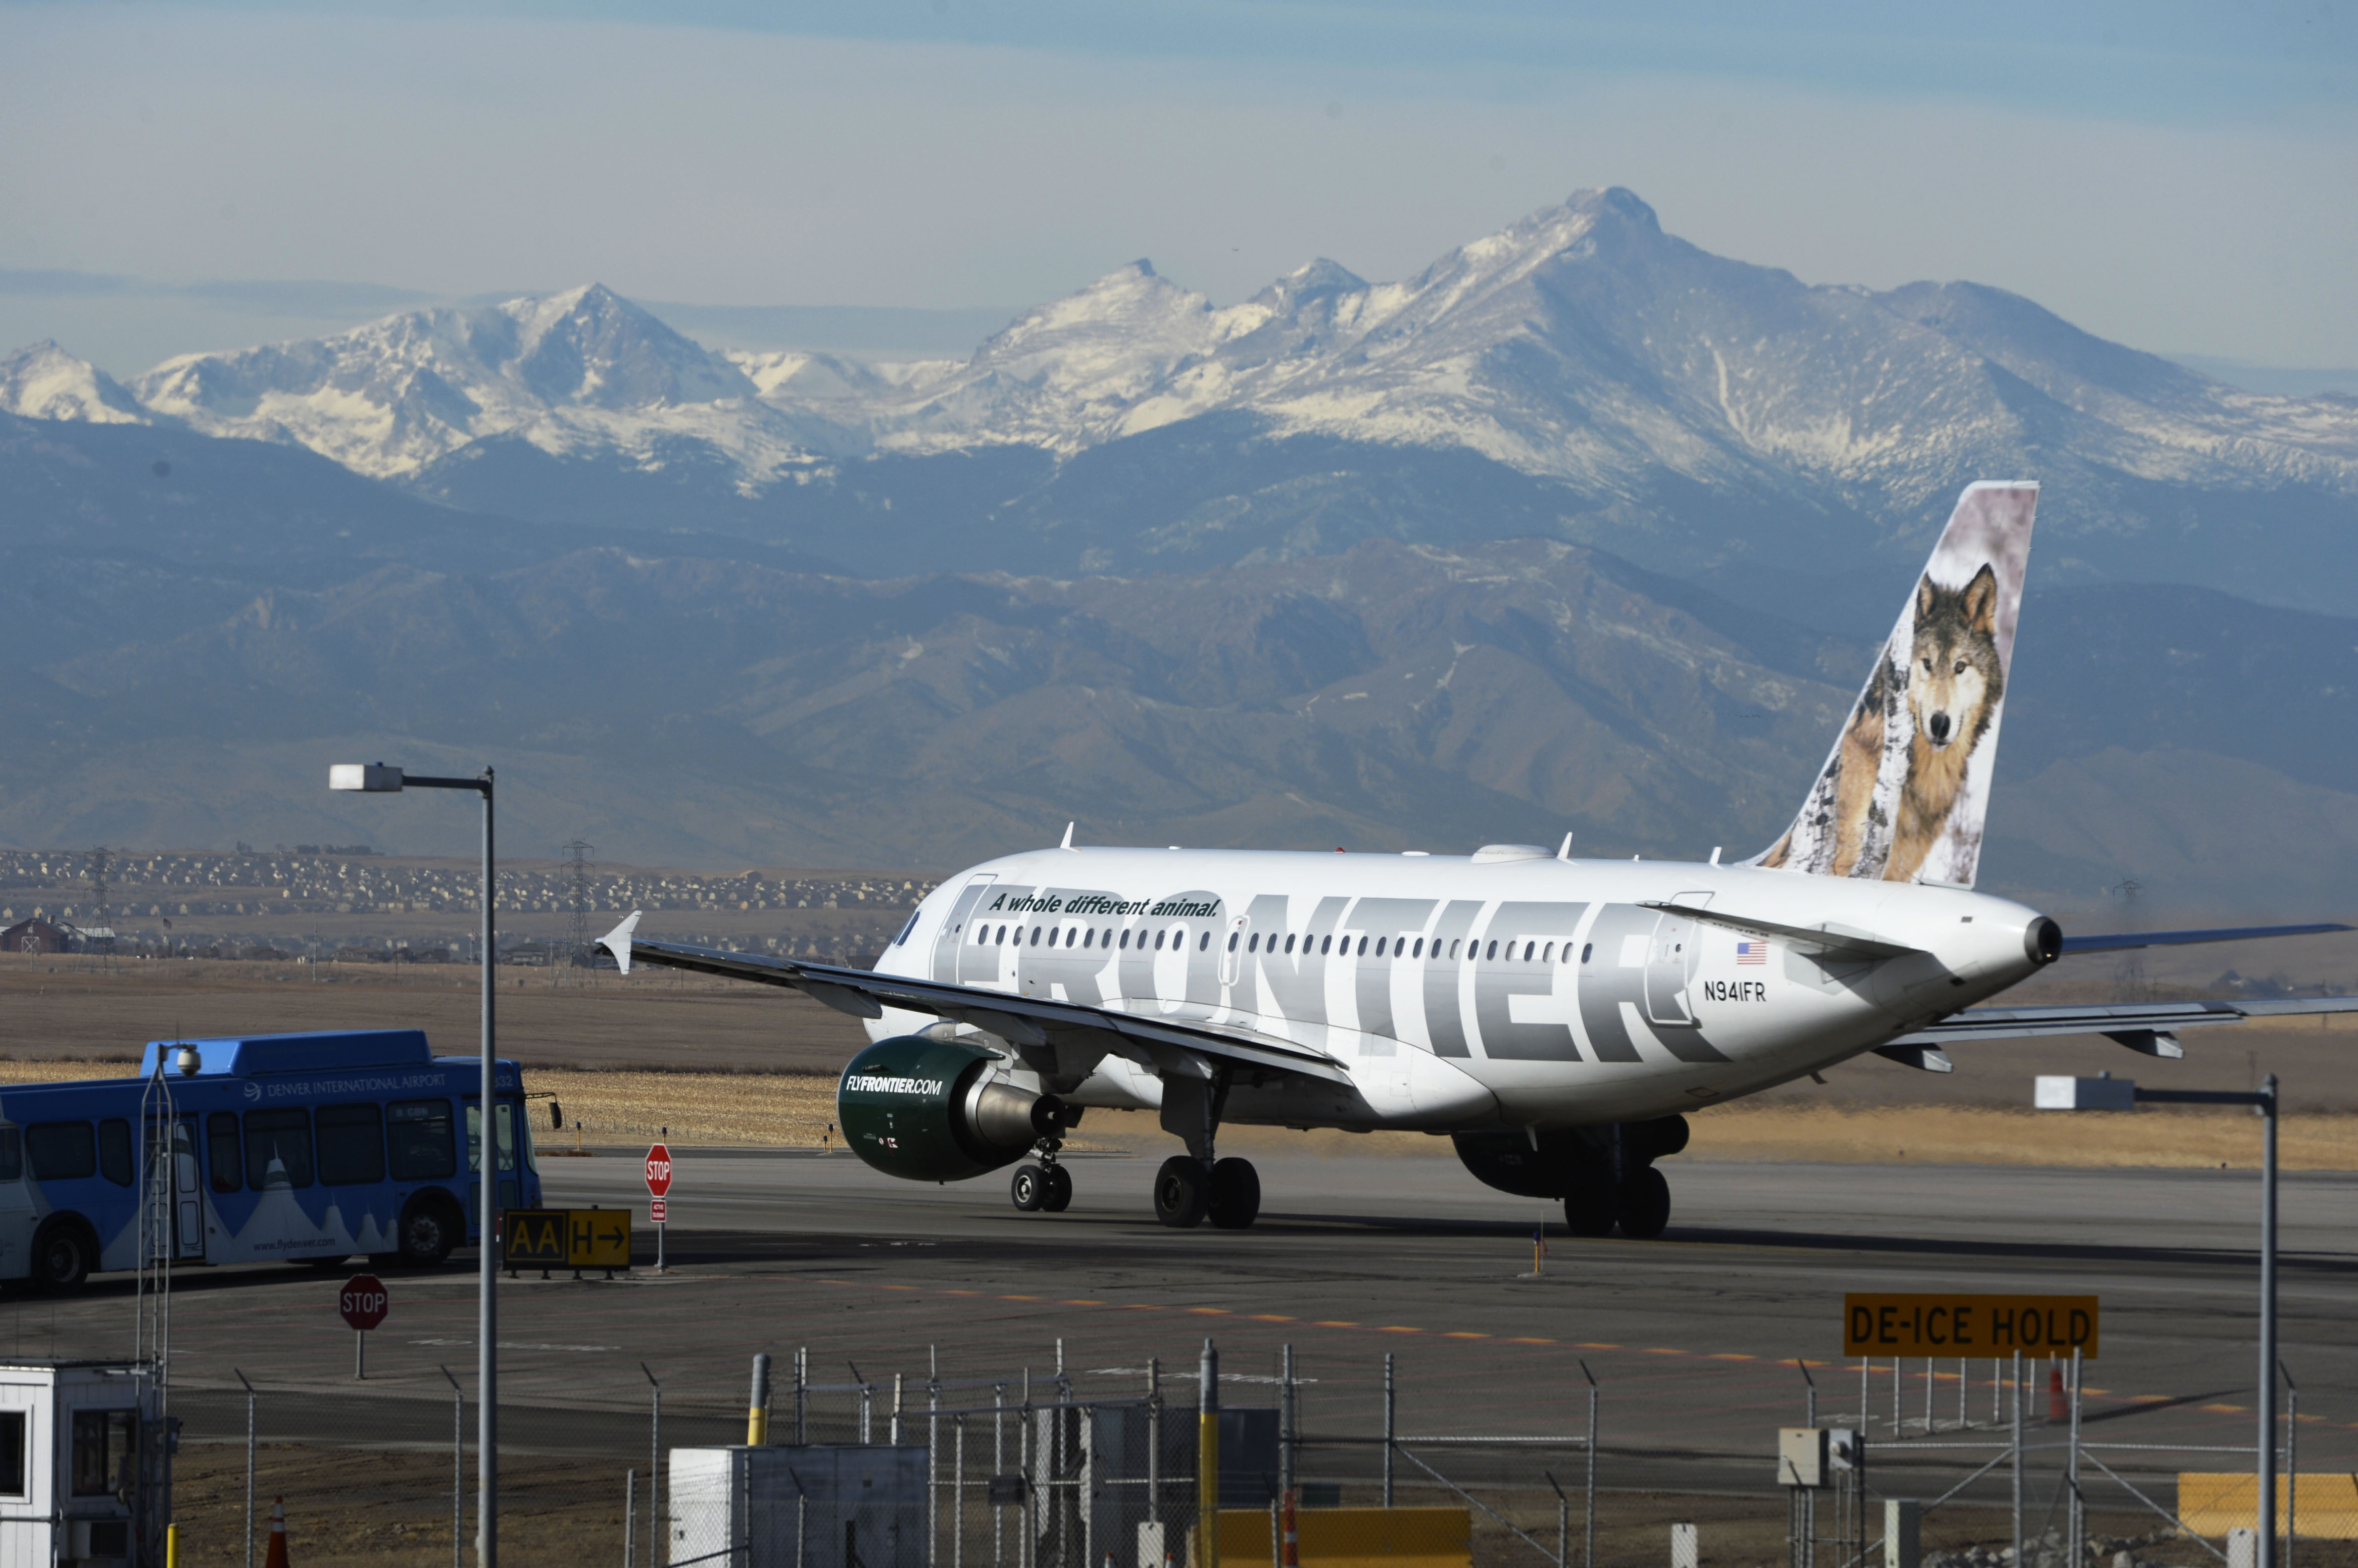 Frontier airlines airplane